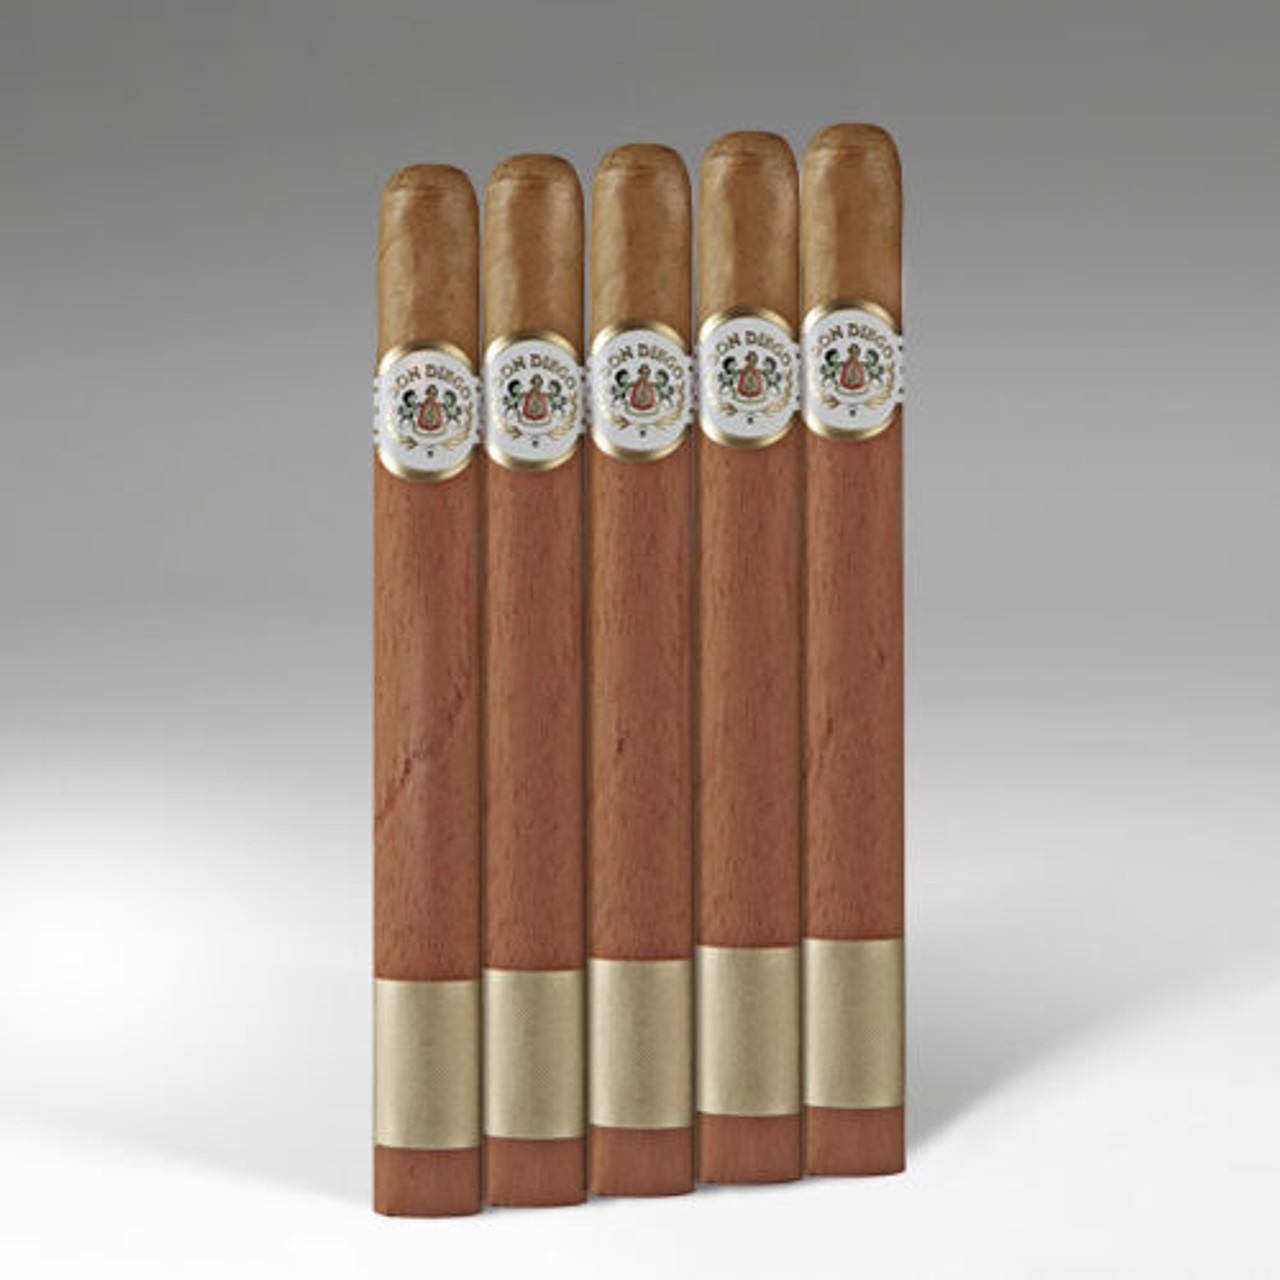 Don Diego Privada No. 1 Cigars - 6.62 x 43 (Pack of 5)